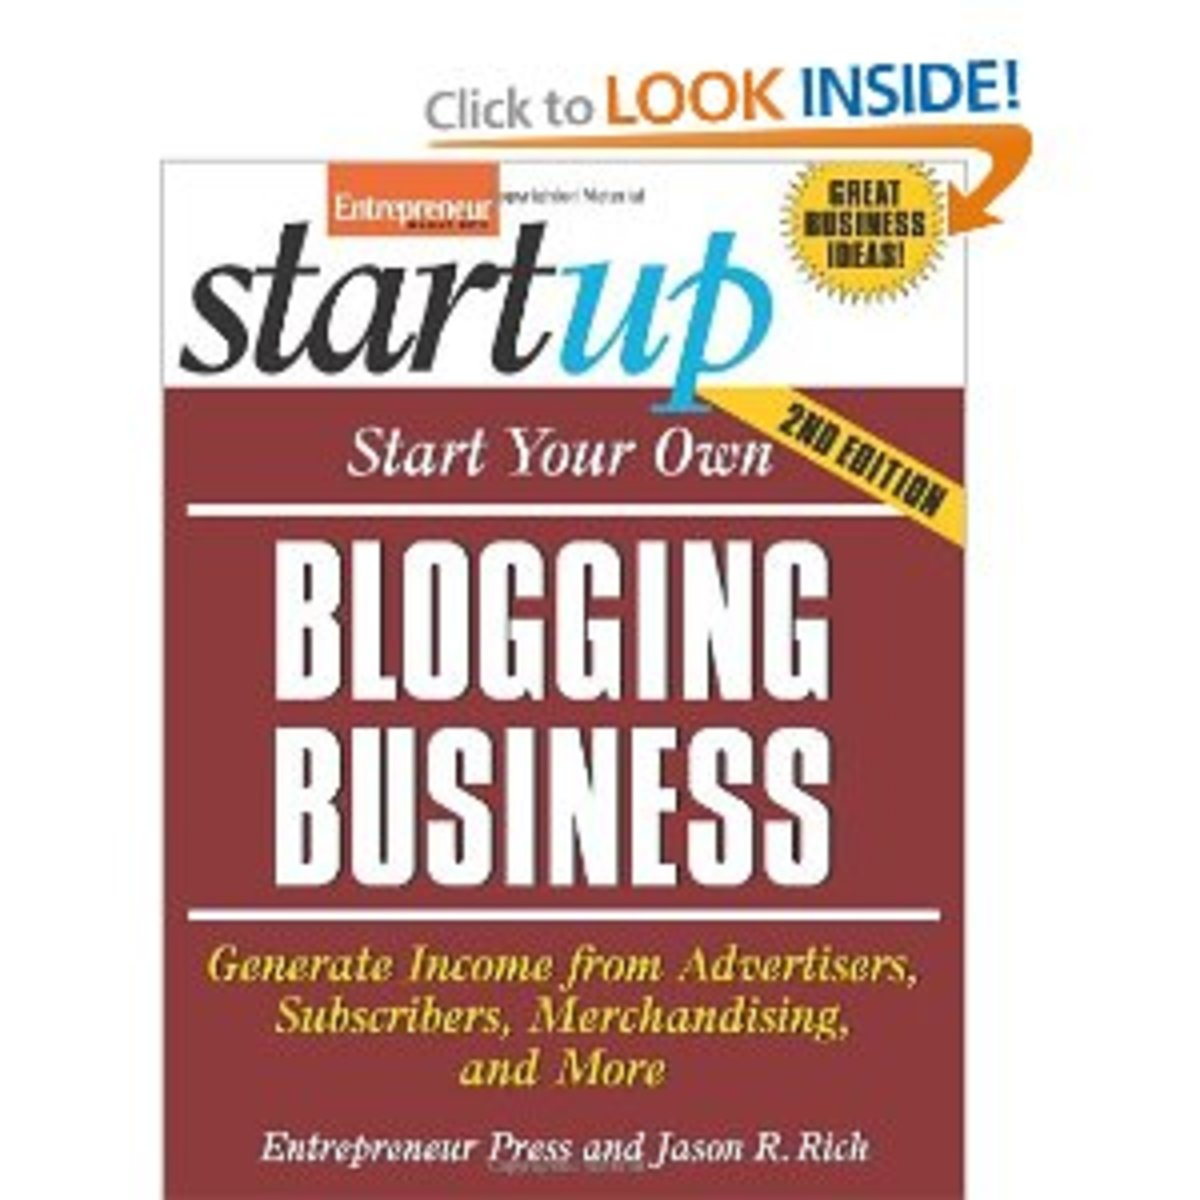 Start Your Own Blogging Business: a How-to-Build-a-Blog Guide